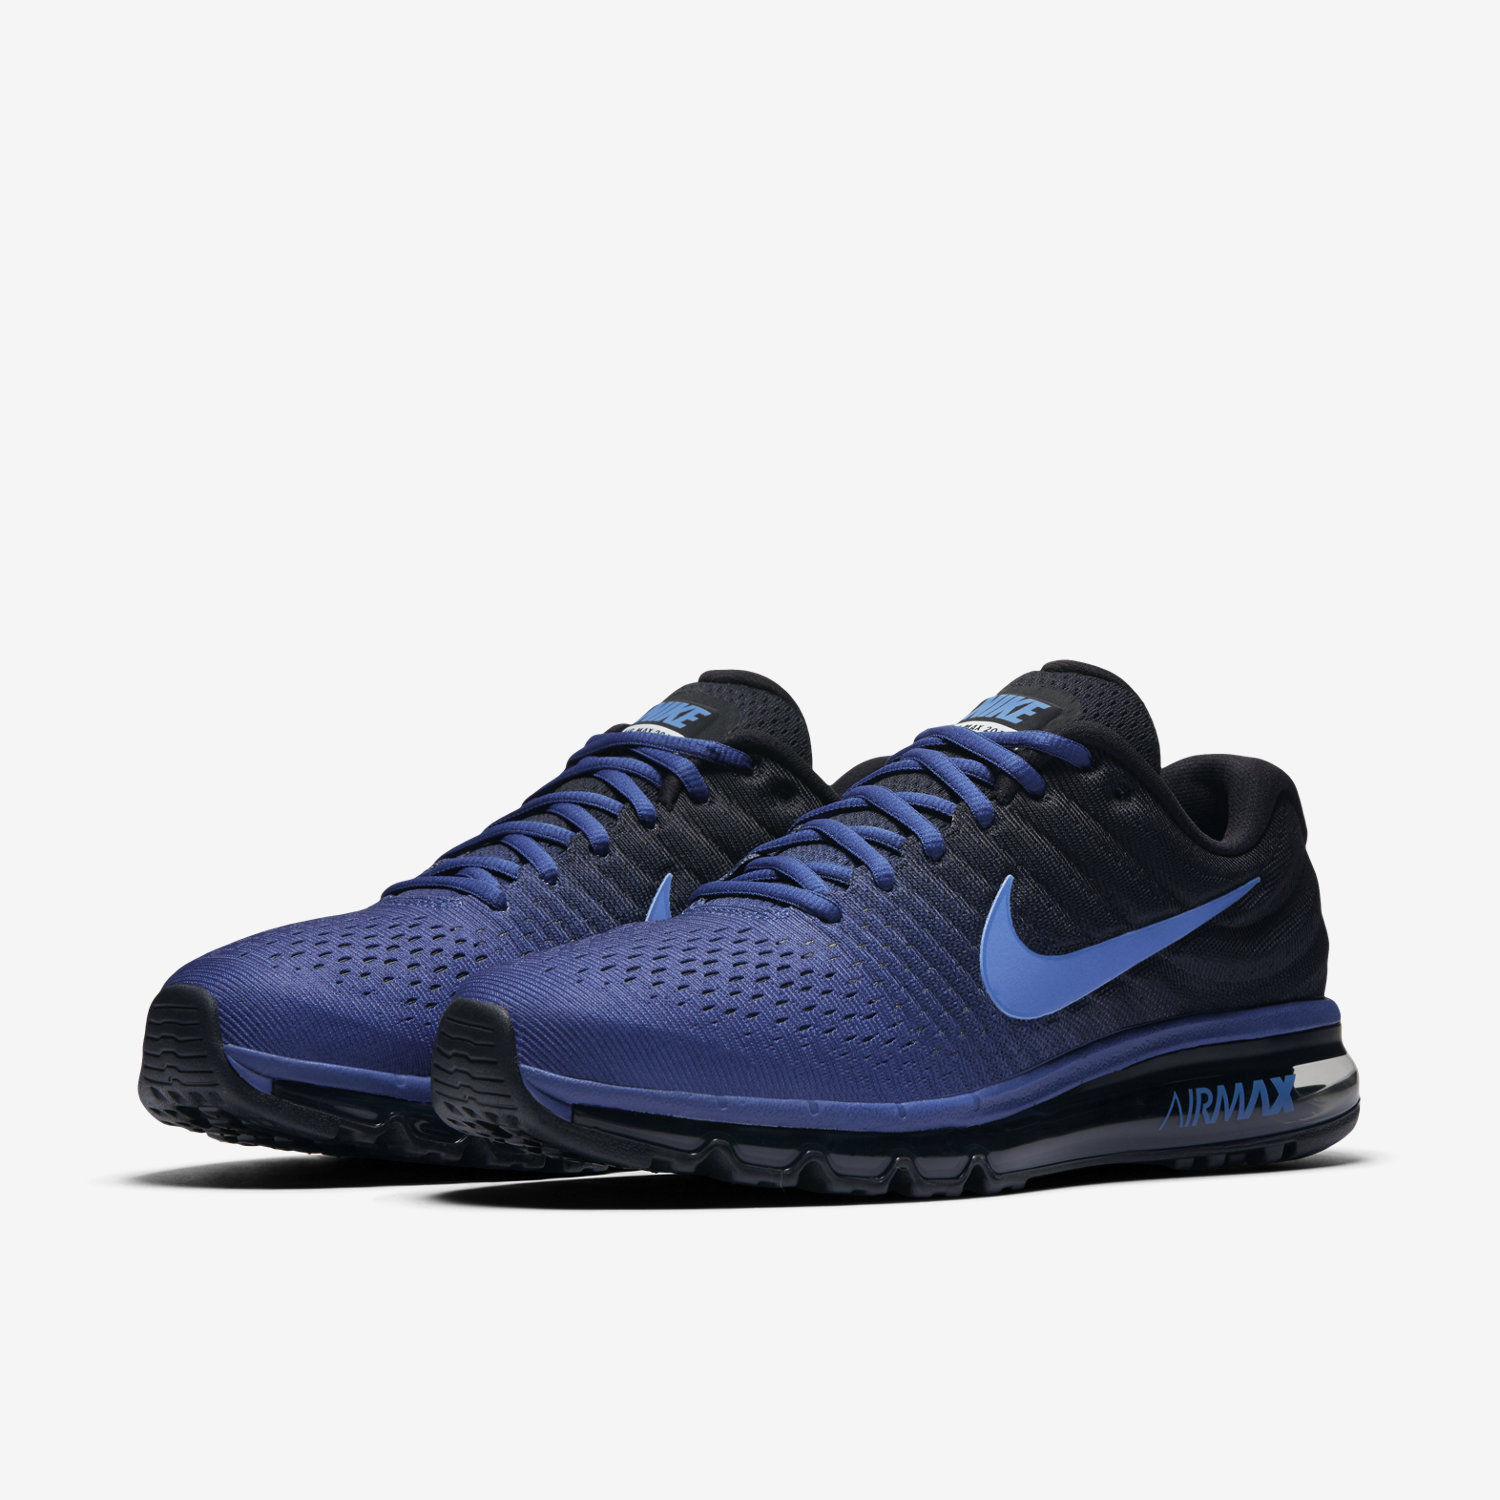 Nike Air Max 2017 Royal Blue/Hyper Cobalt Men Running sold by cleatssale4A